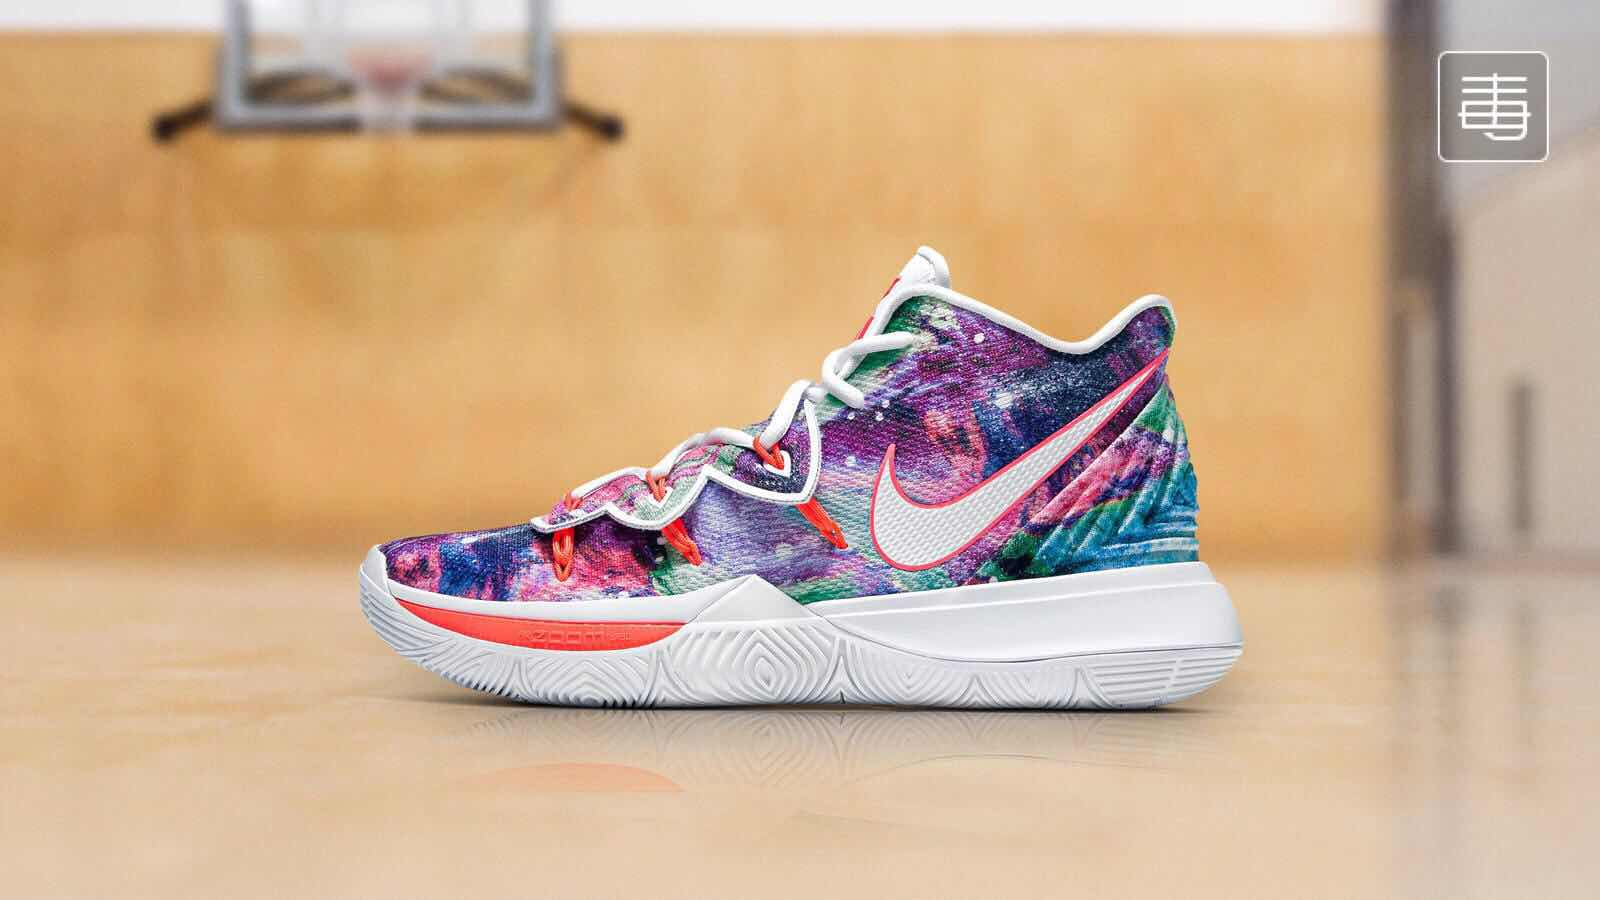 Nike Kyrie 5 Flor Colorful Shoes